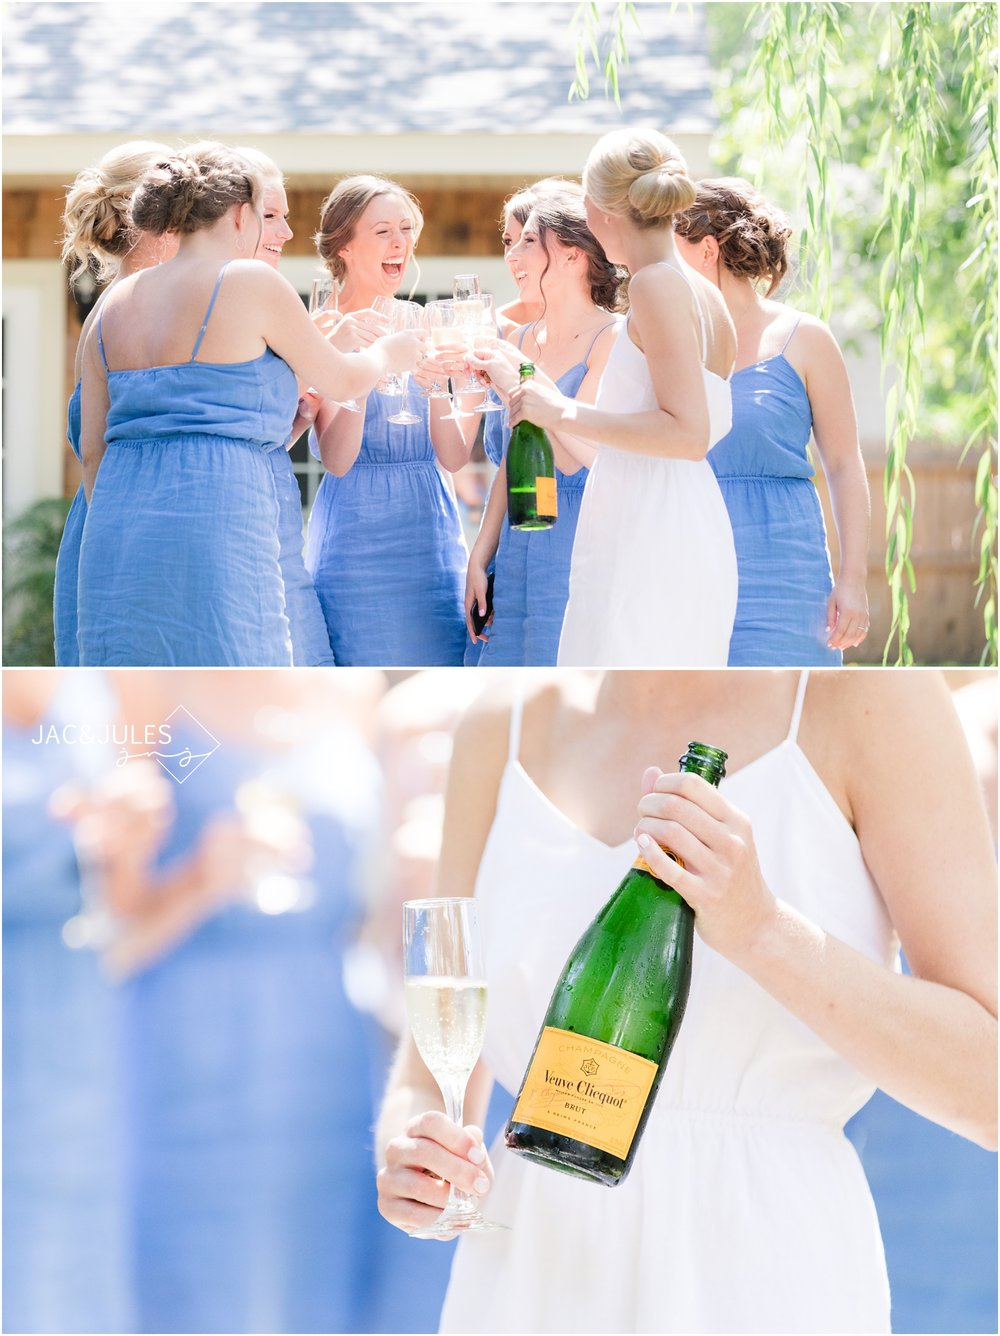 Bridesmaids champagne toast in Bay Head, NJ.